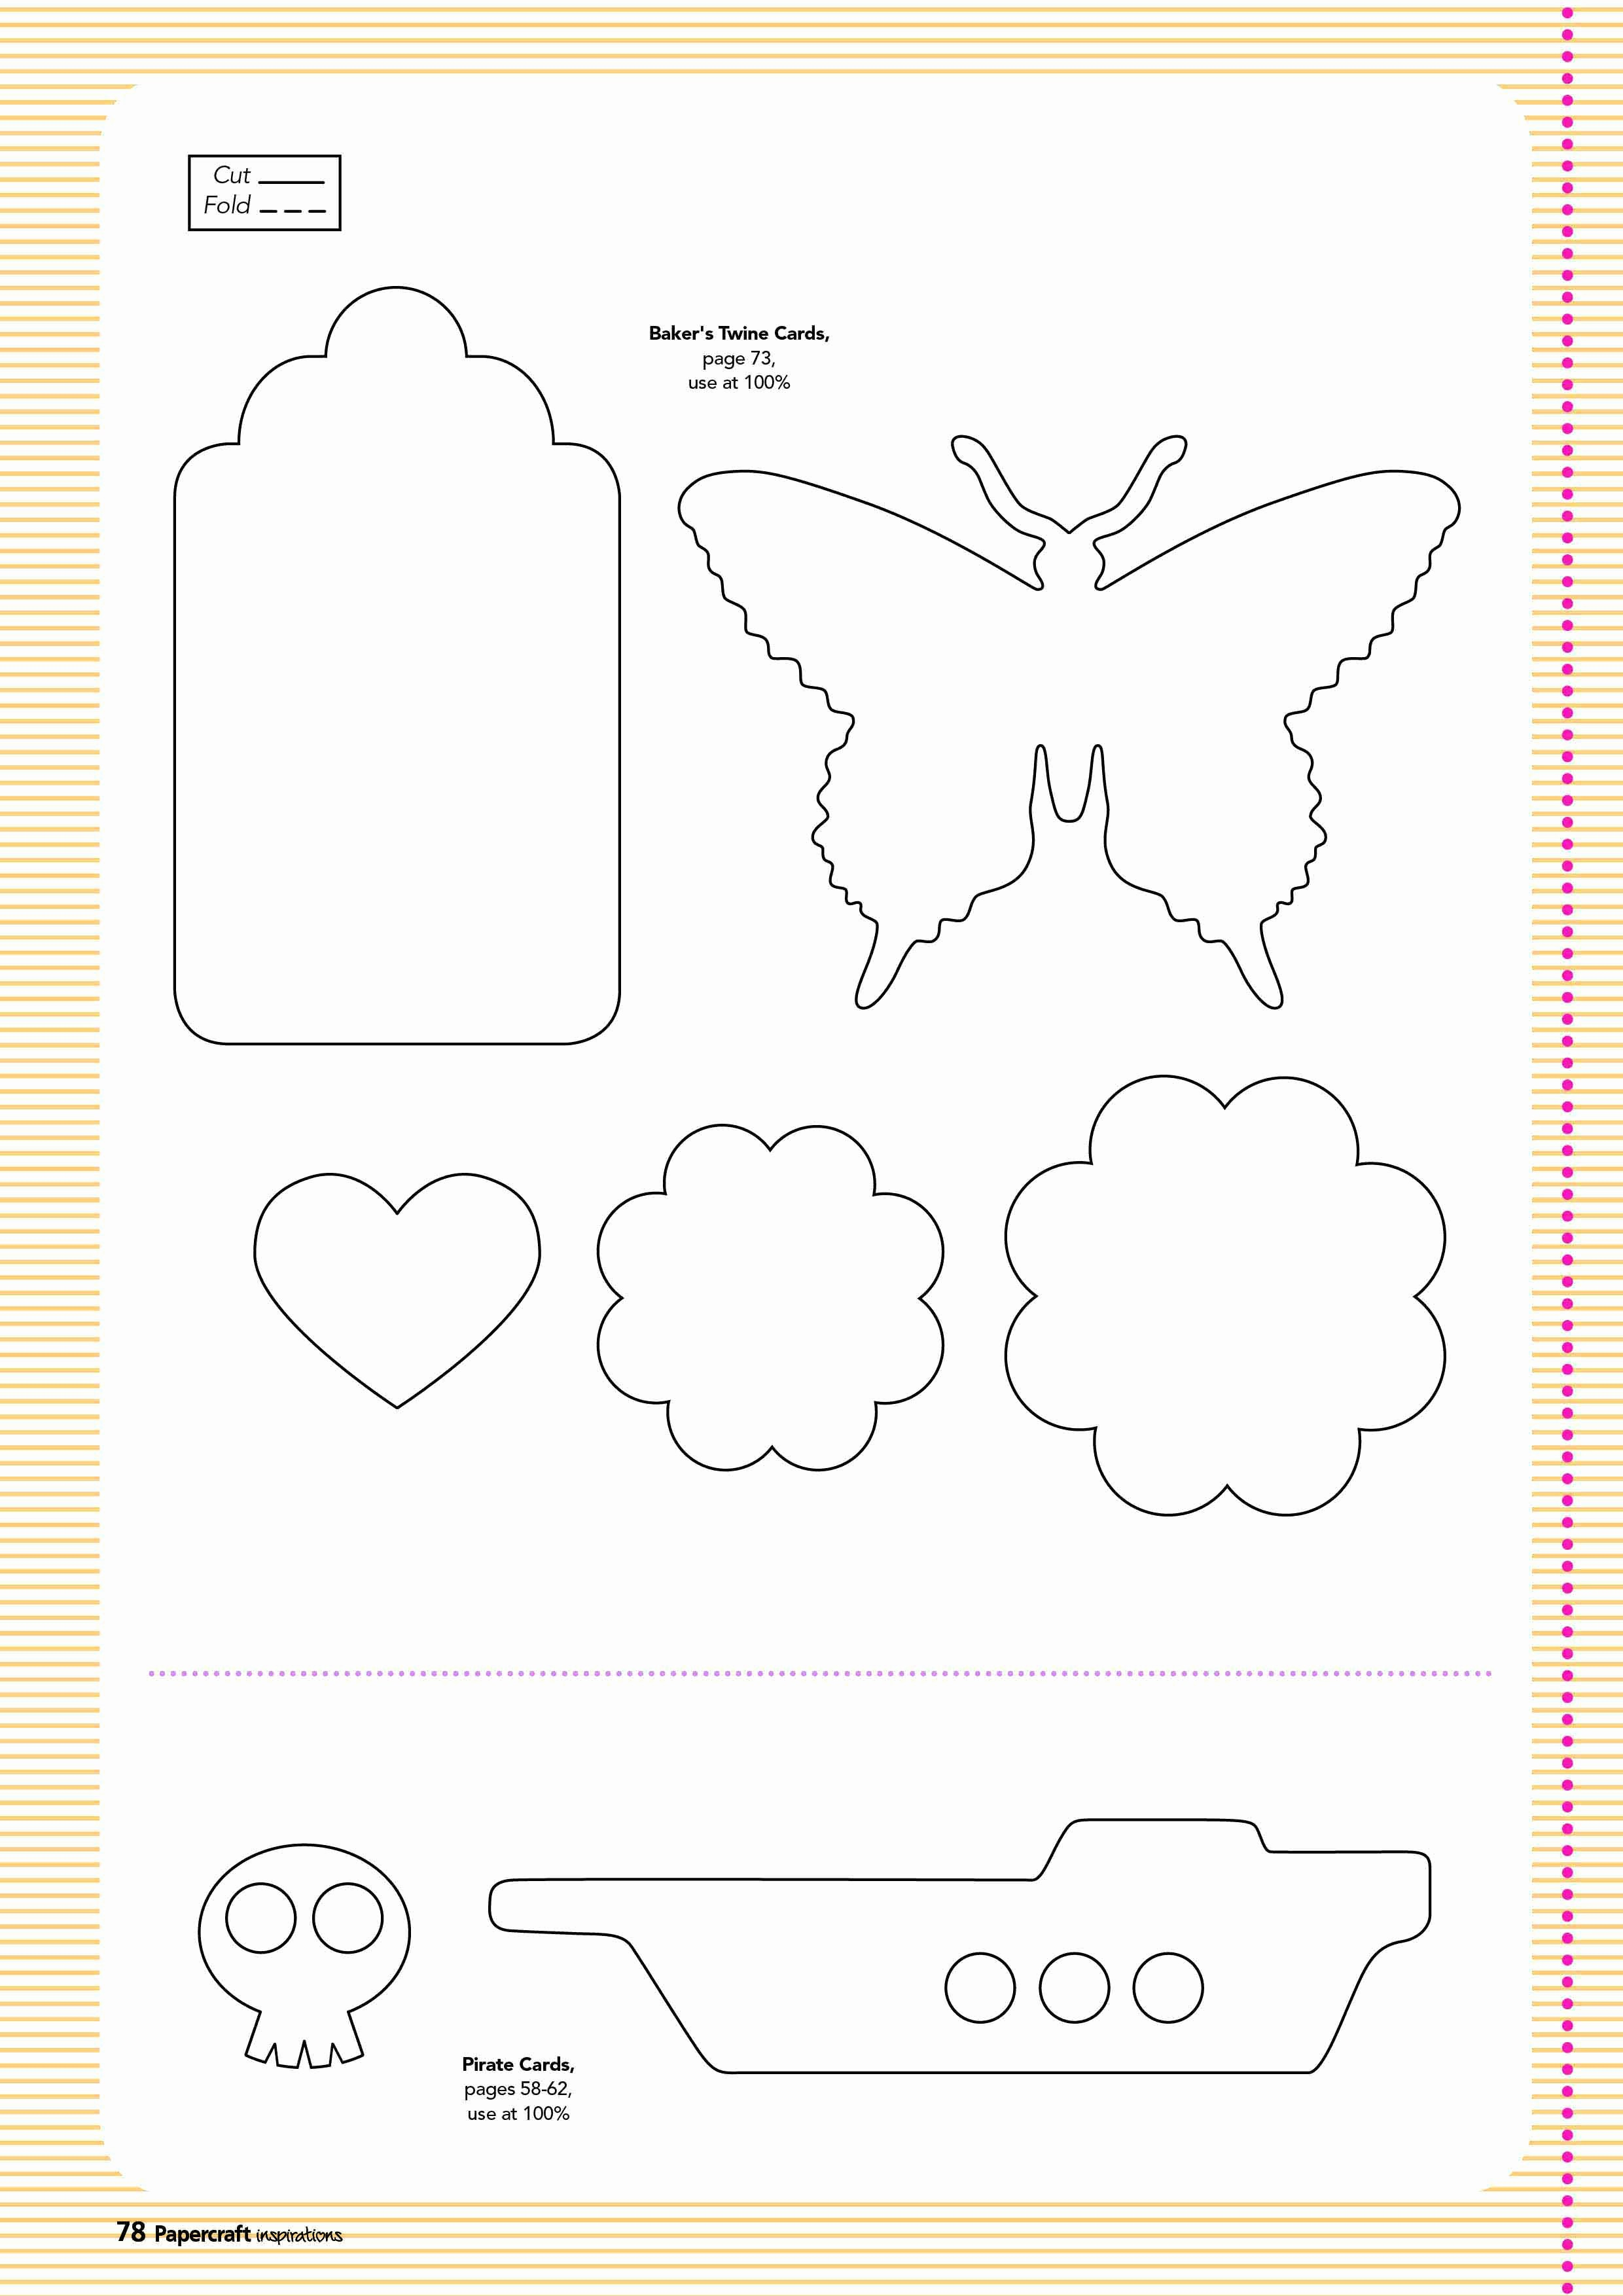 Templates for Cards Free Downloads Elegant Free Templates From issue 128 Papercraft Inspirations